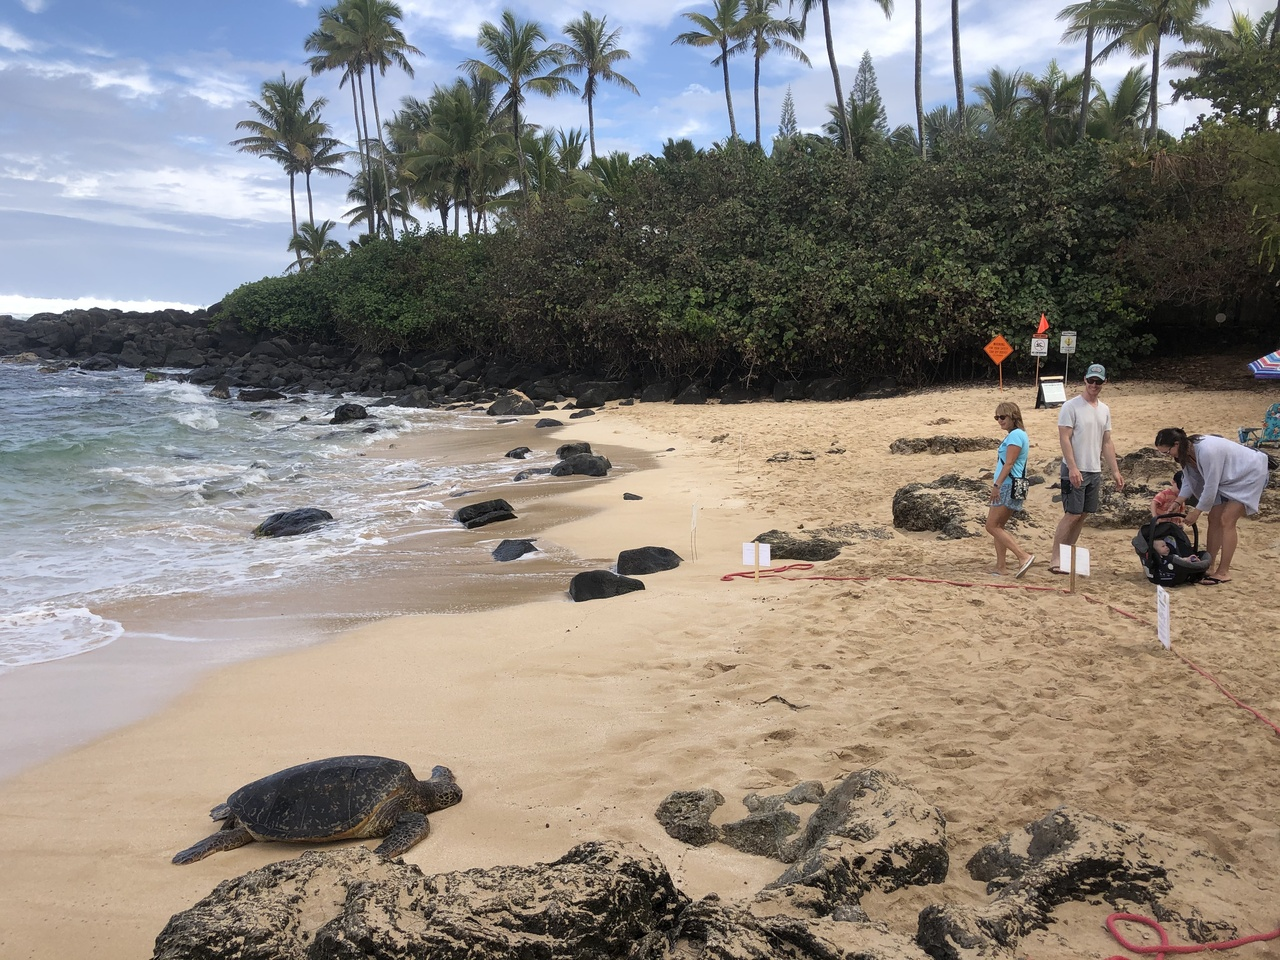 Sea turtle resting on beach, people at a distance.